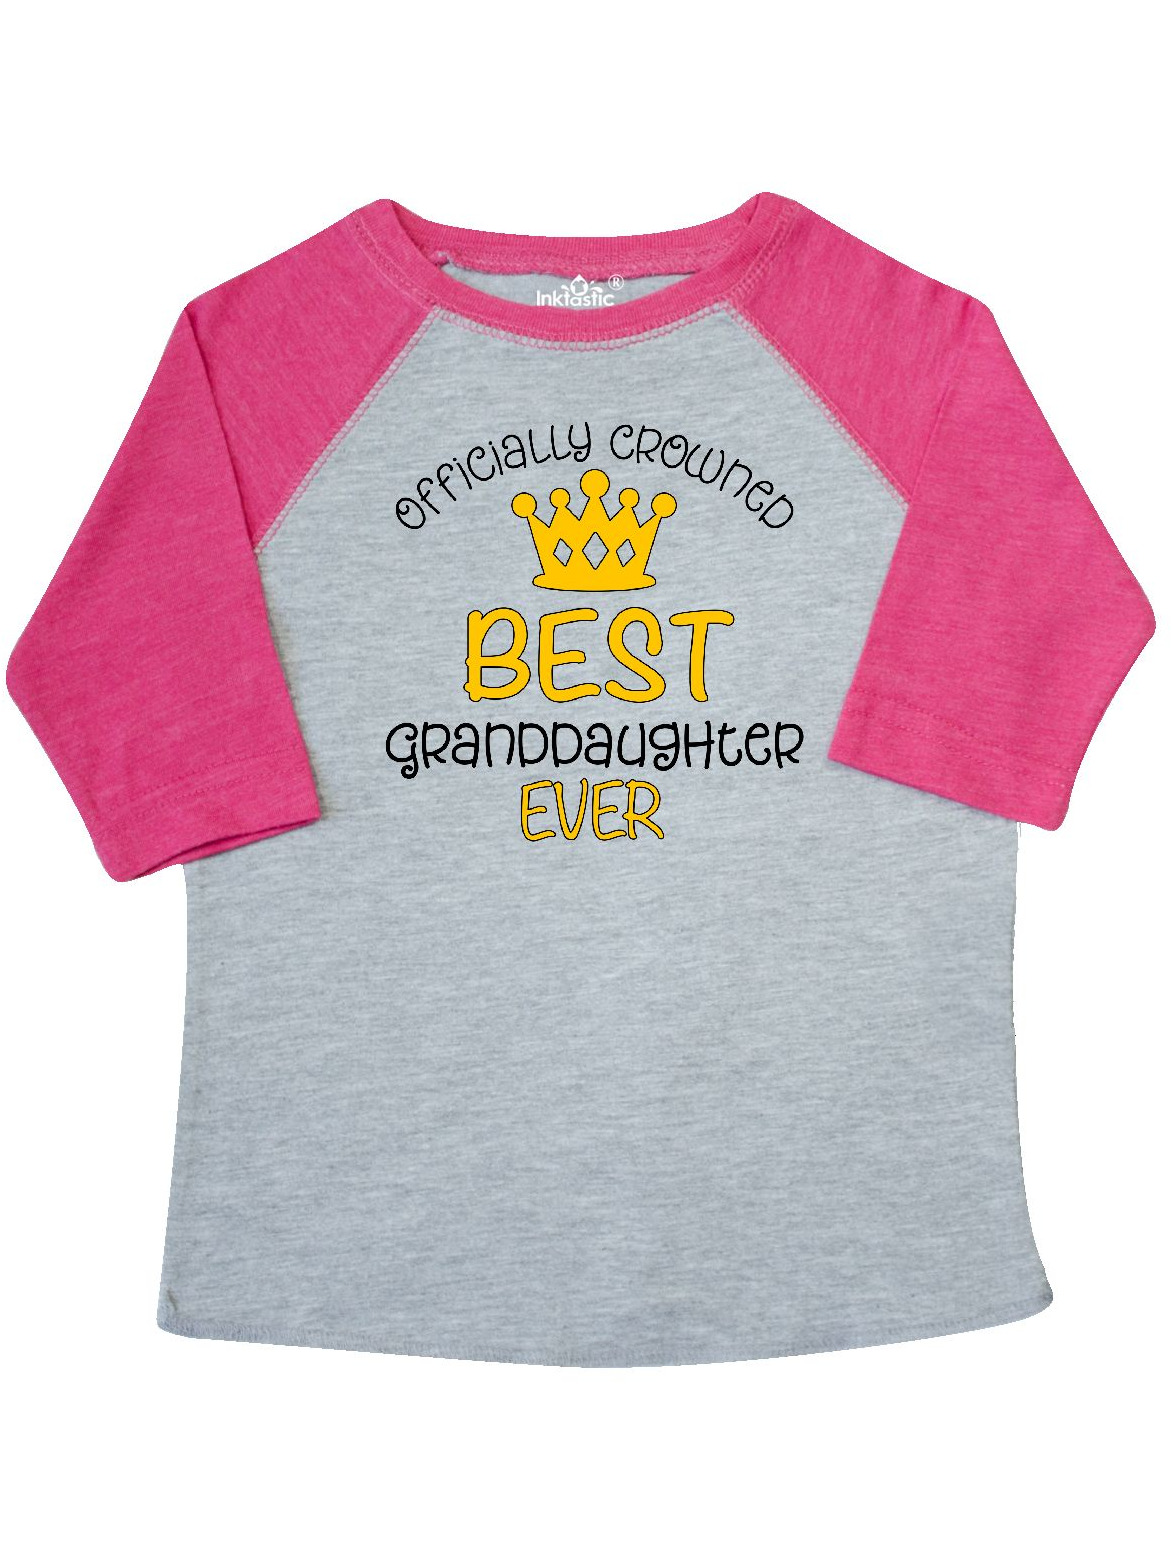 Officially Crowned Best Granddaughter Ever gold crown Toddler T-Shirt